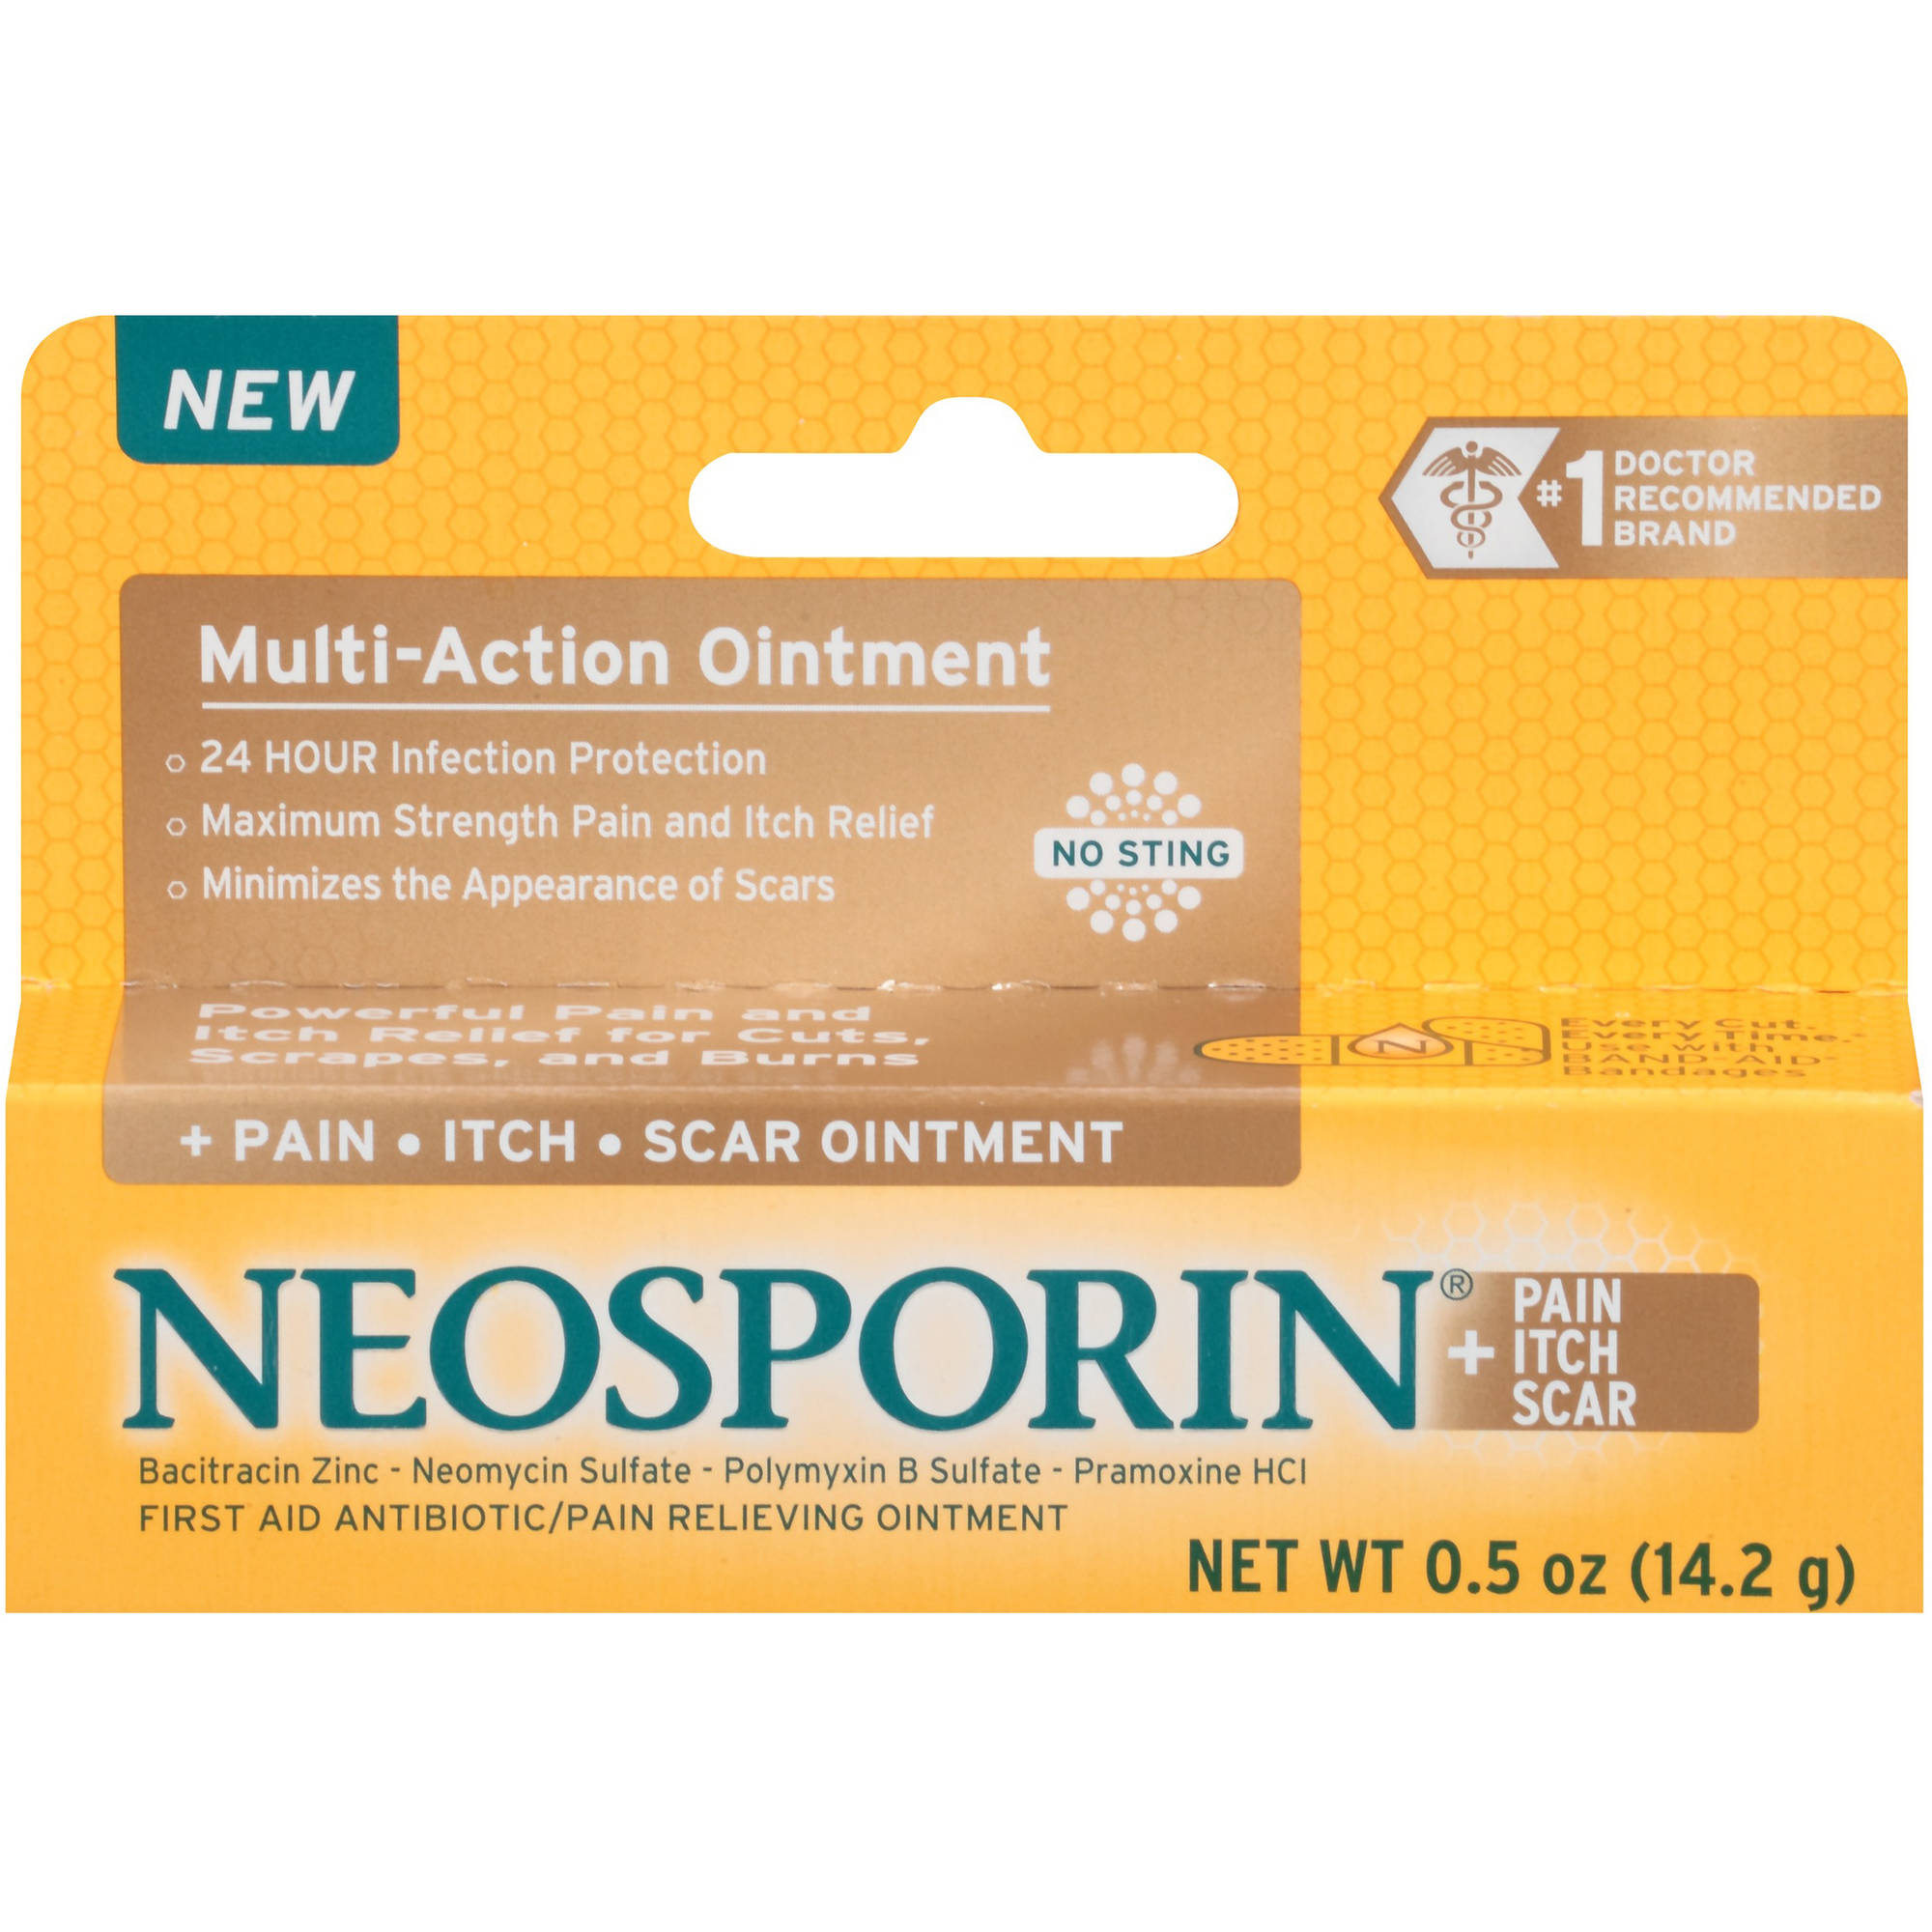 Neosporin + Pain Itch Scar Multi-Action Ointment, .5 oz